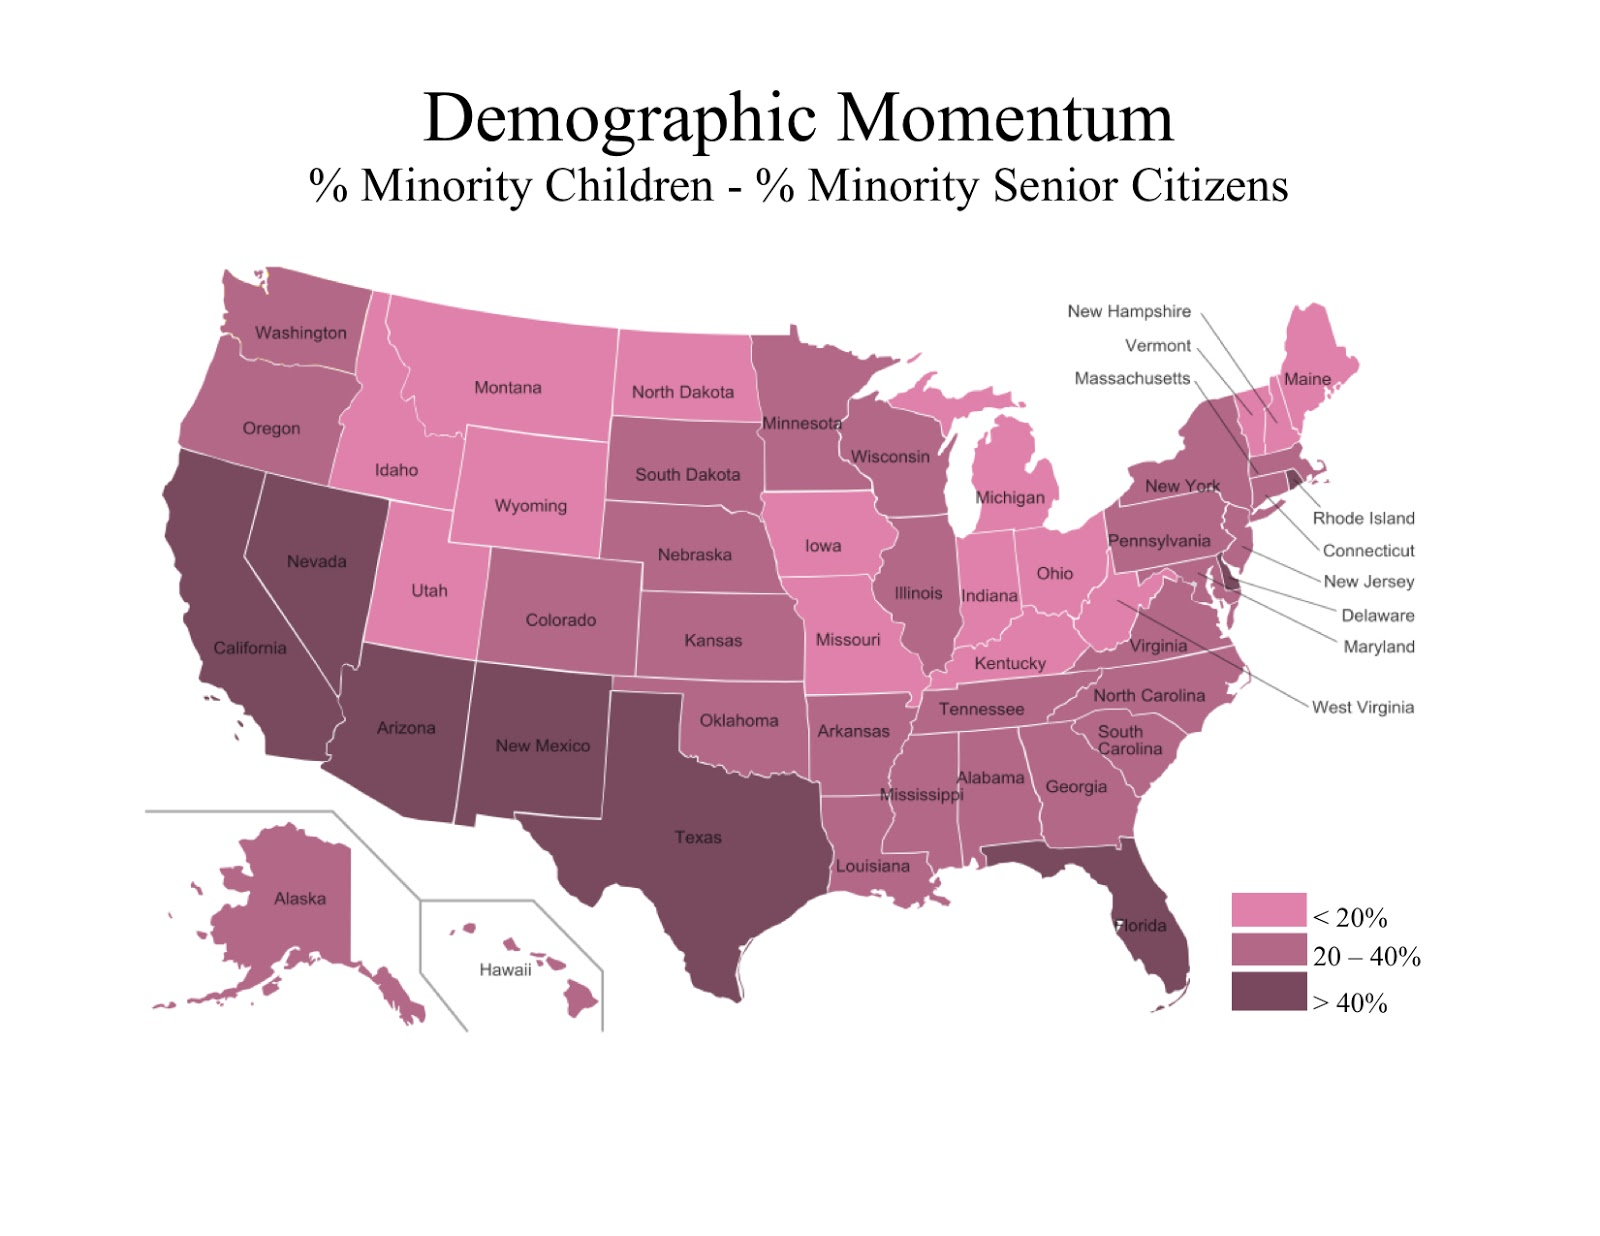 the second map shows the demographic momentum in each state represented as the percent of children who are minorities minus the percent of senior citizens